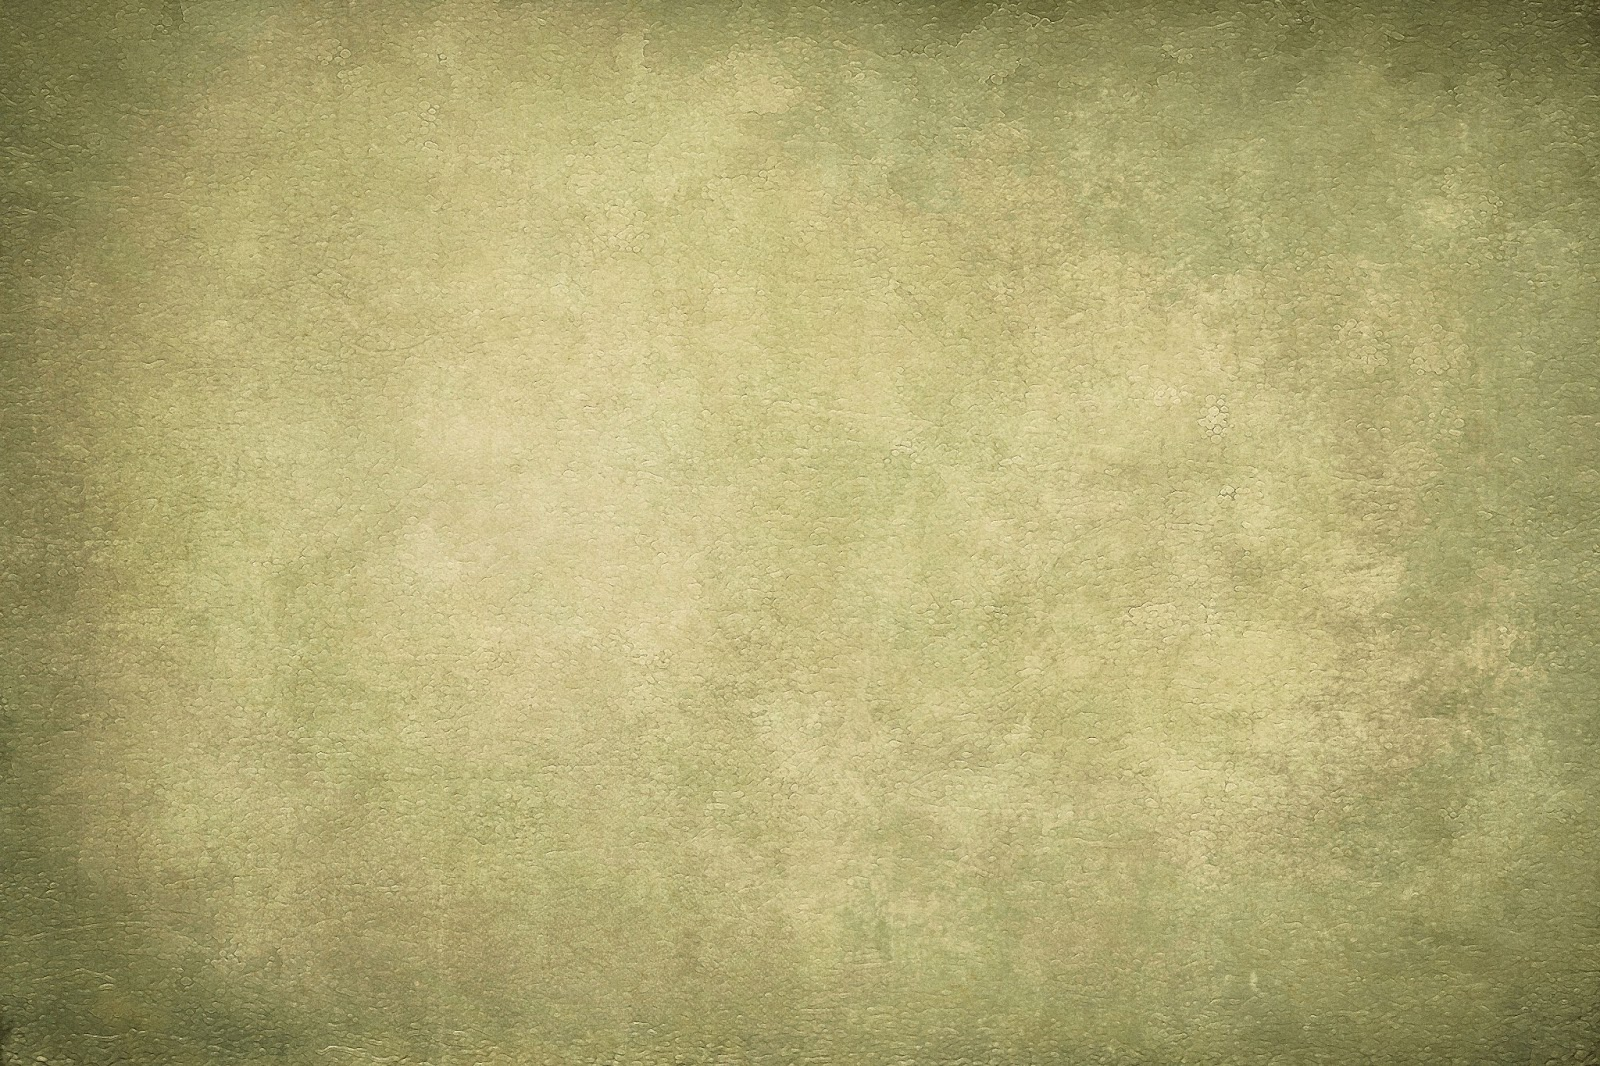 5 free earth tone textures